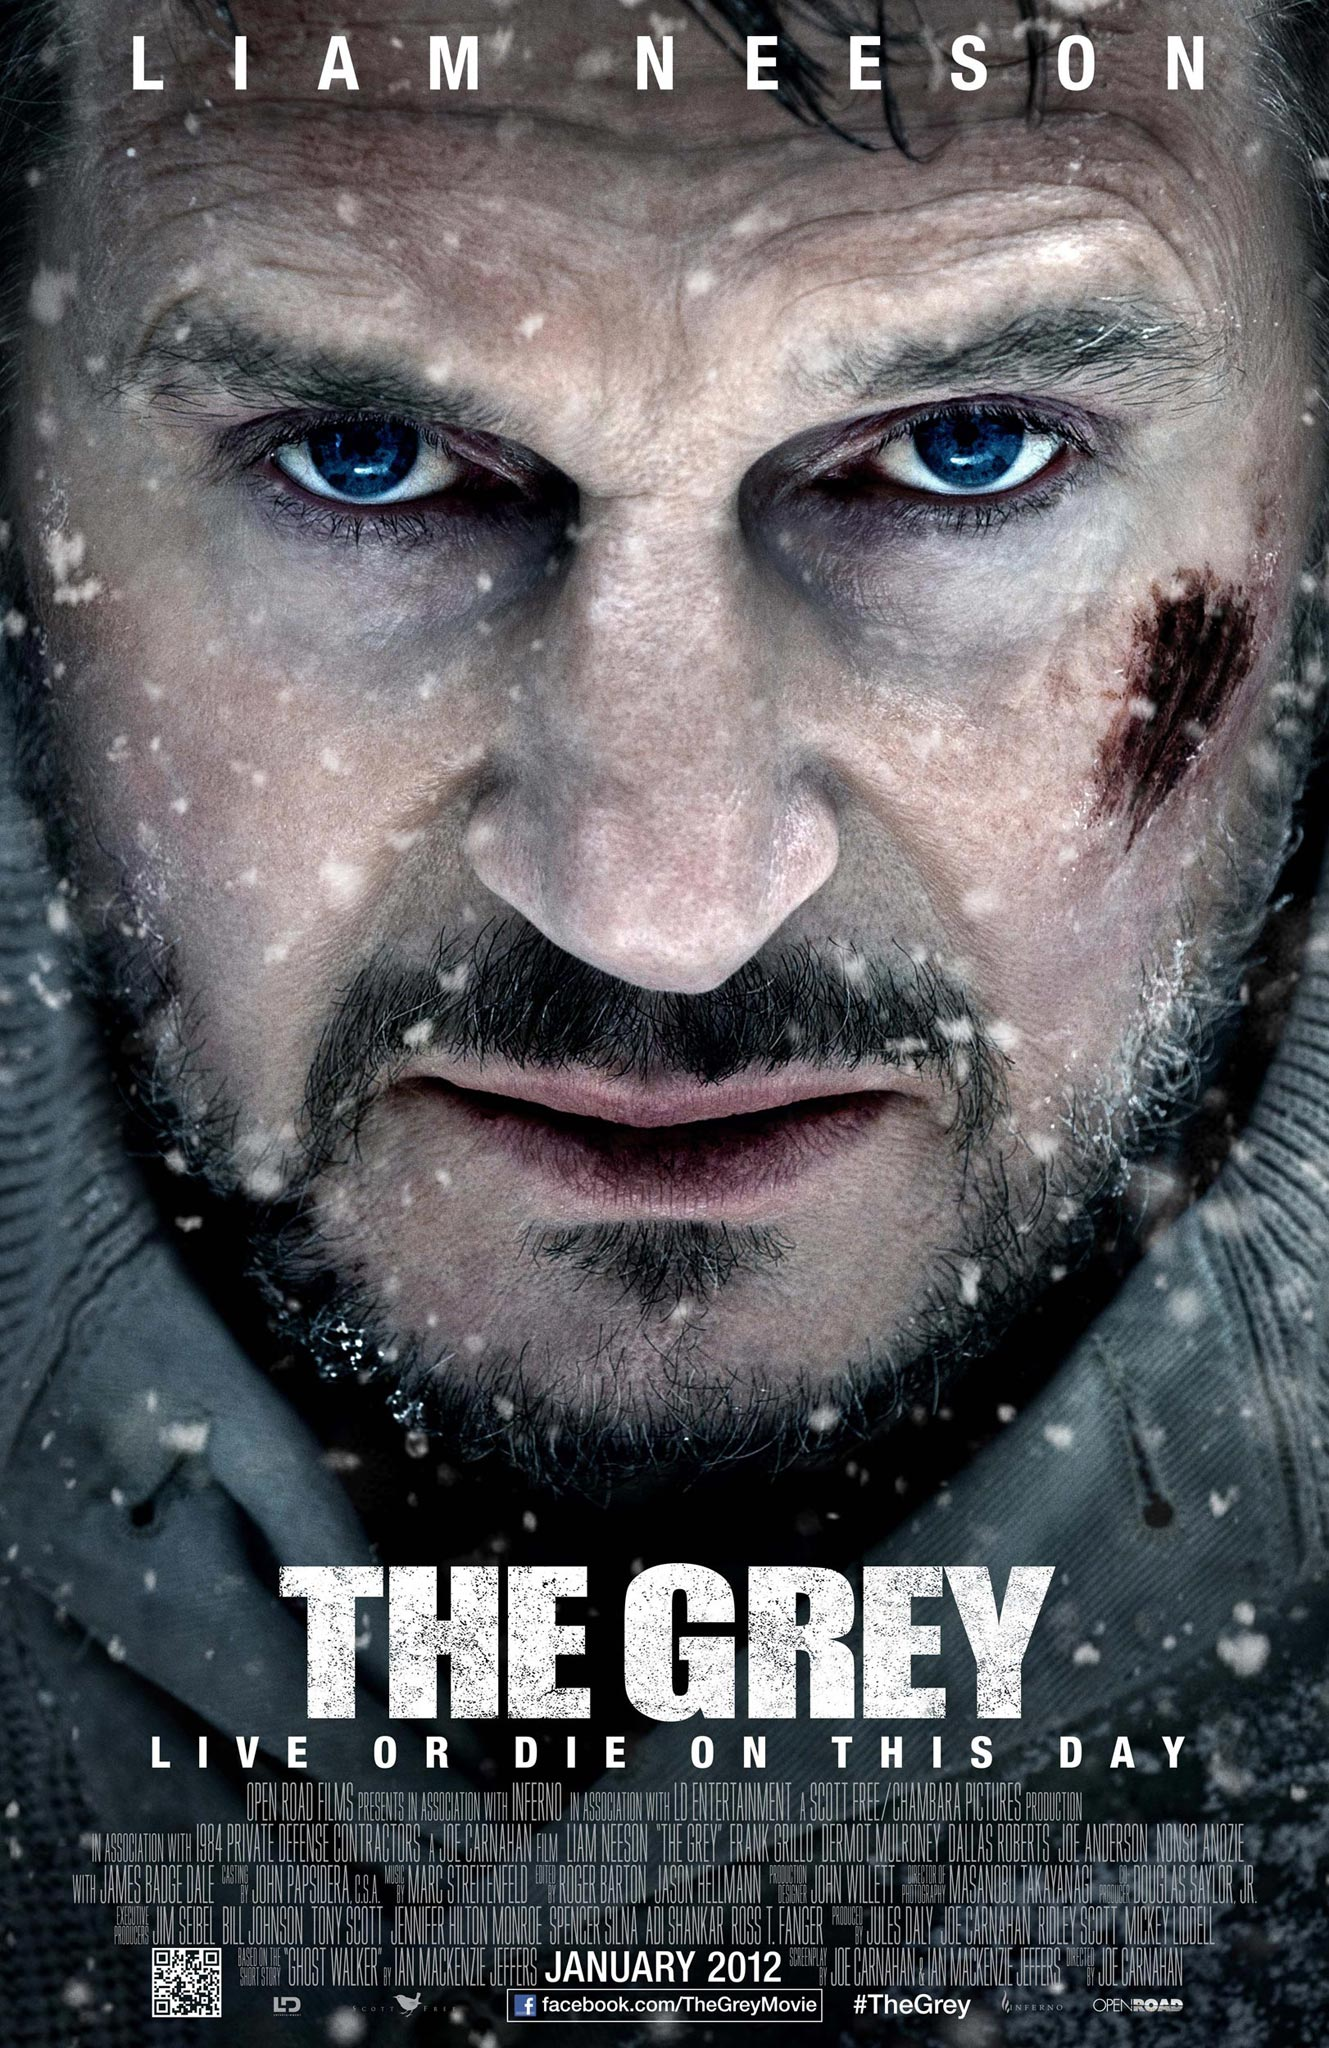 The-grey-poster_liam-neeson